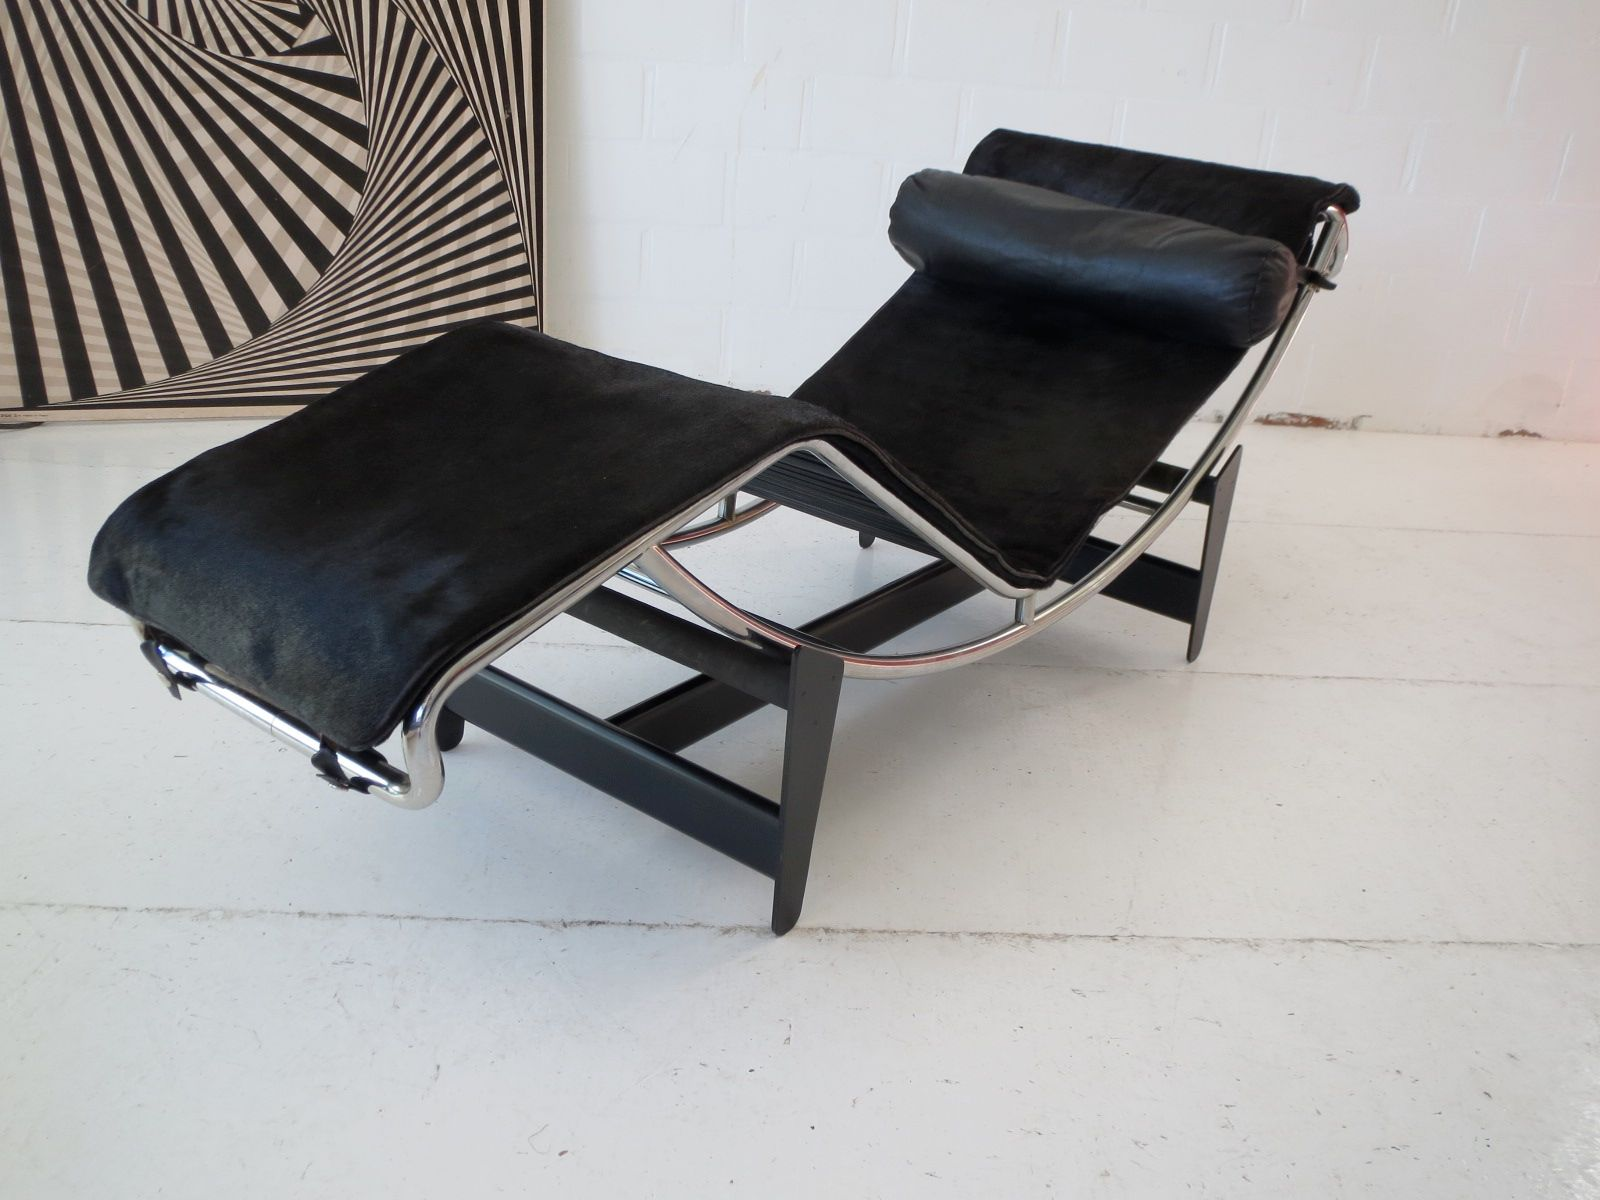 Early under 750 numbered lc4 chaise longue by le for Chaise longue le corbusier cad